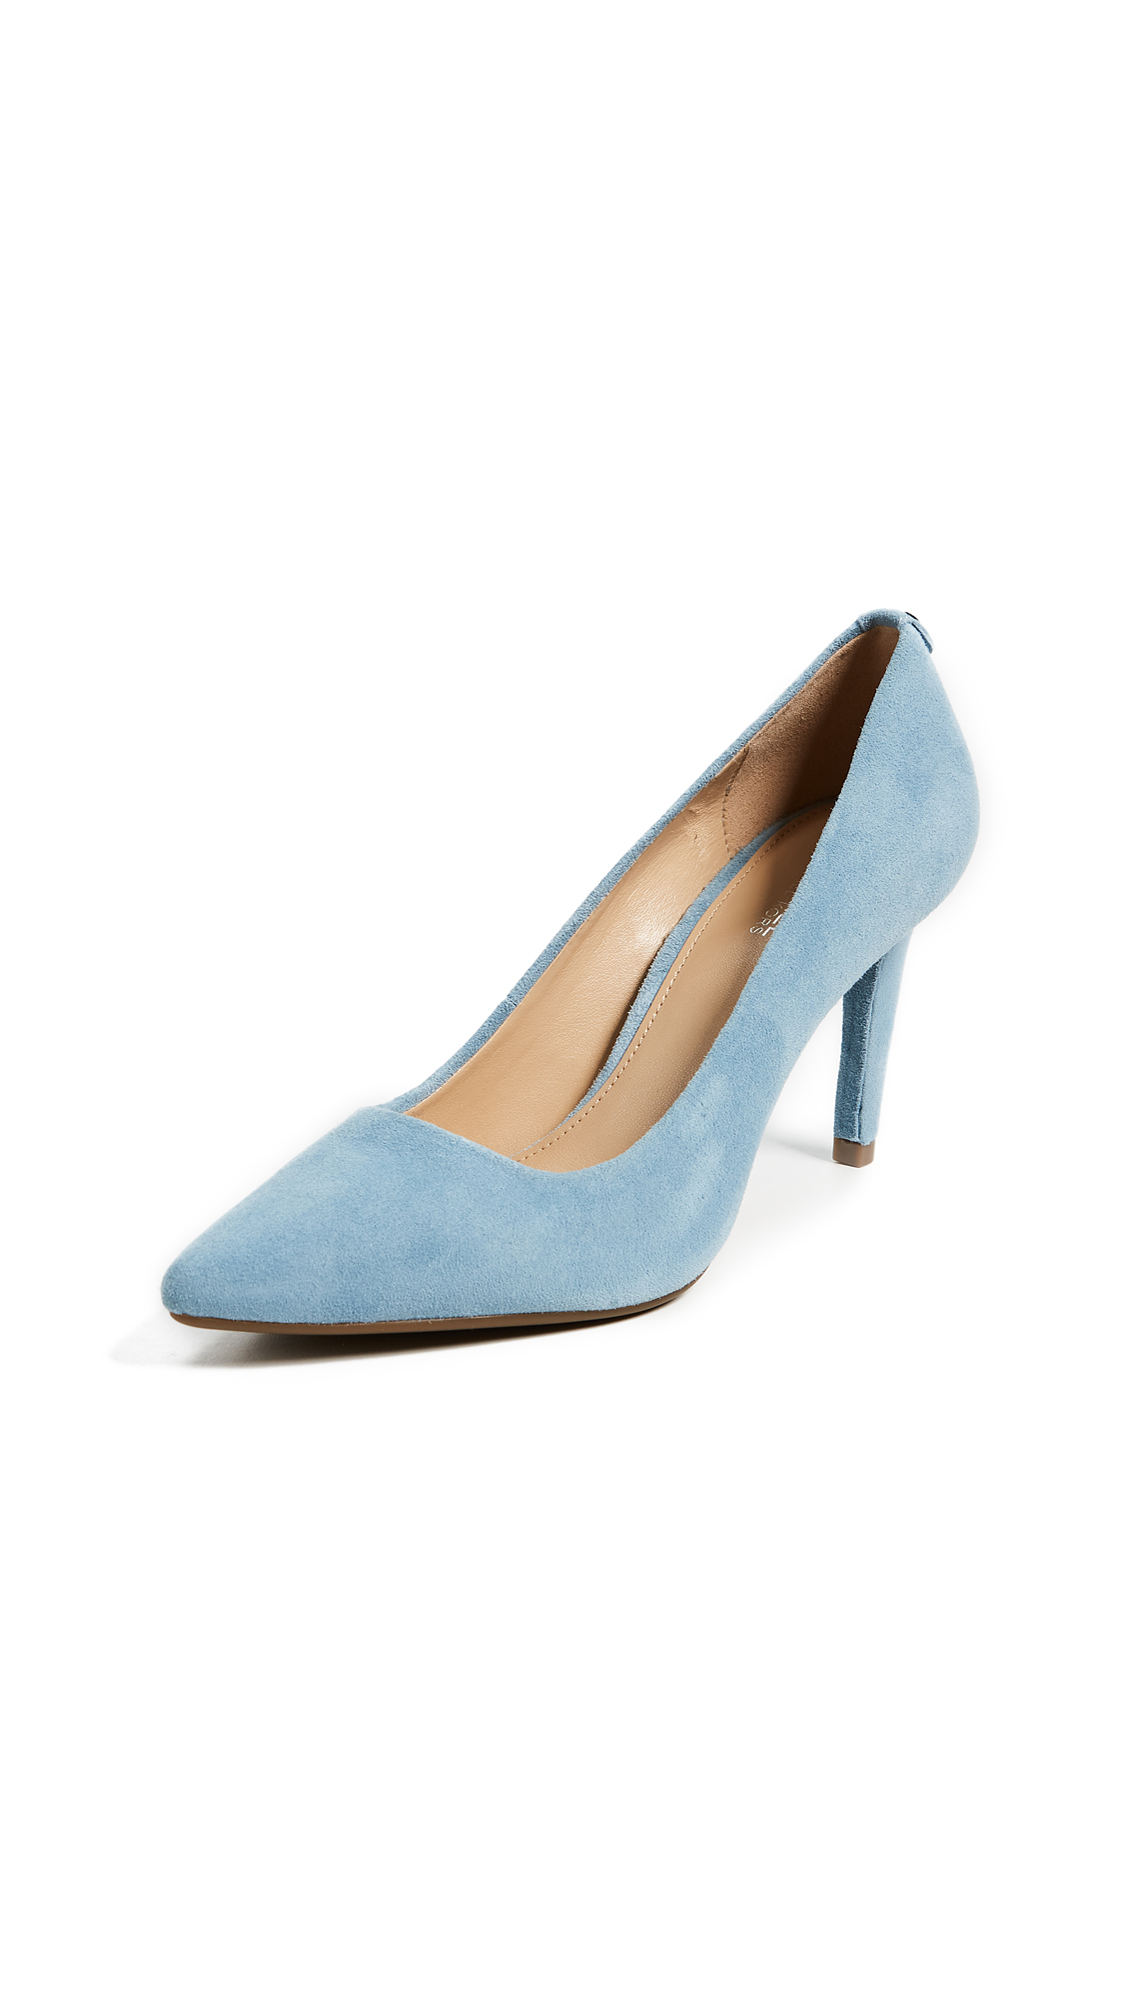 MICHAEL Michael Kors Dorothy Flex Pumps - Pale Blue